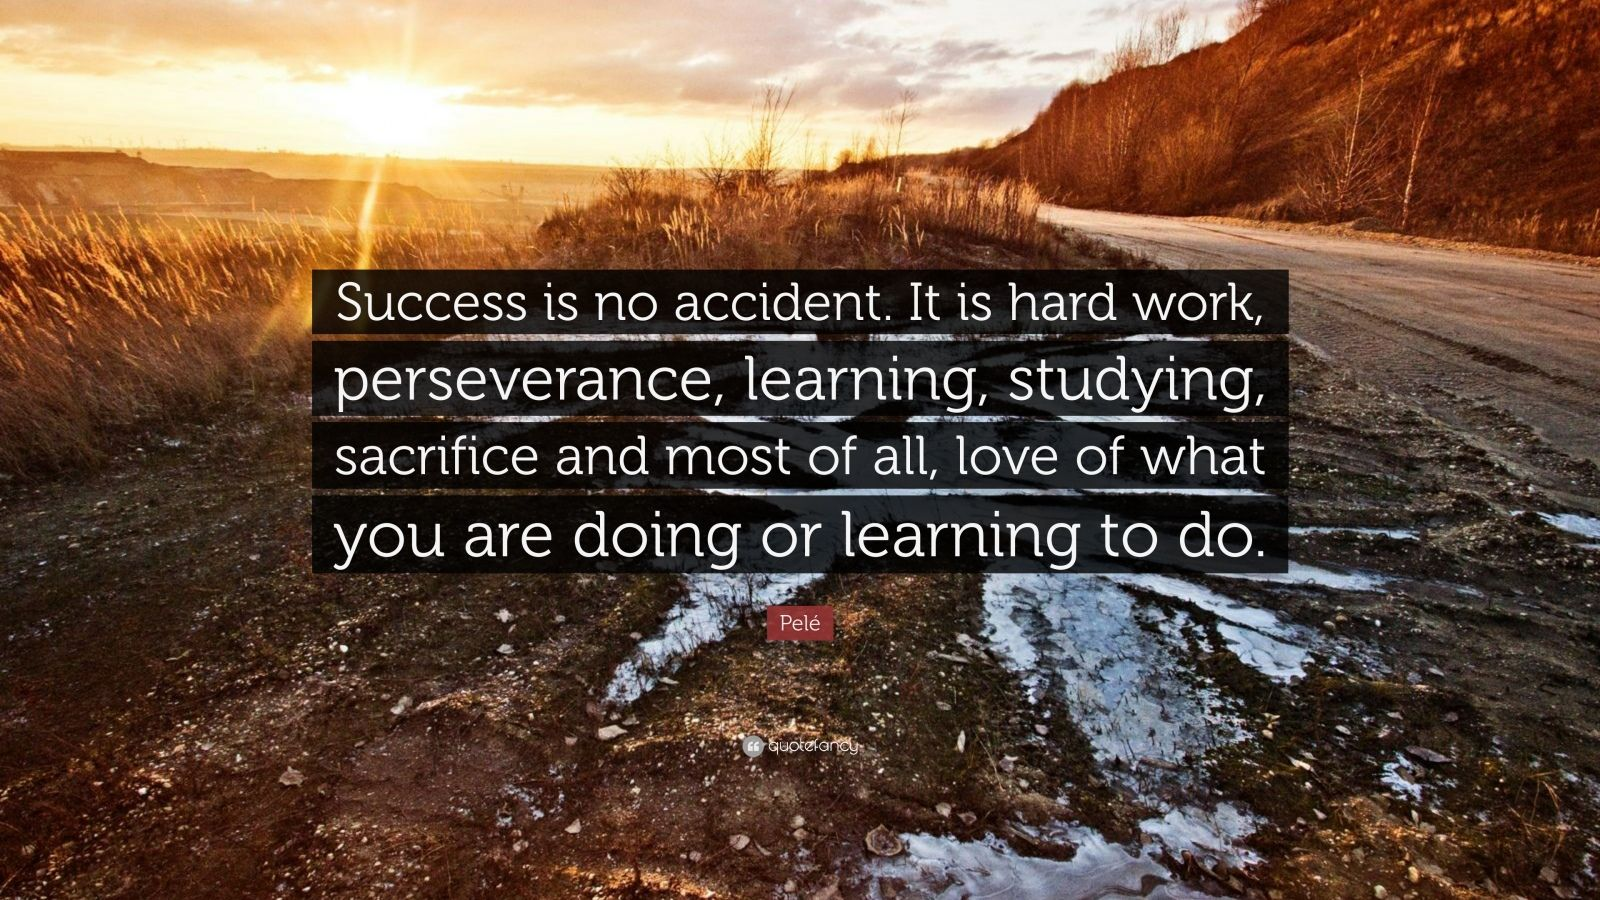 """Pelé Quote: """"Success is no accident. It is hard work, perseverance, learning, studying, sacrifice and most of all, love of what you are doing or learning to do."""""""